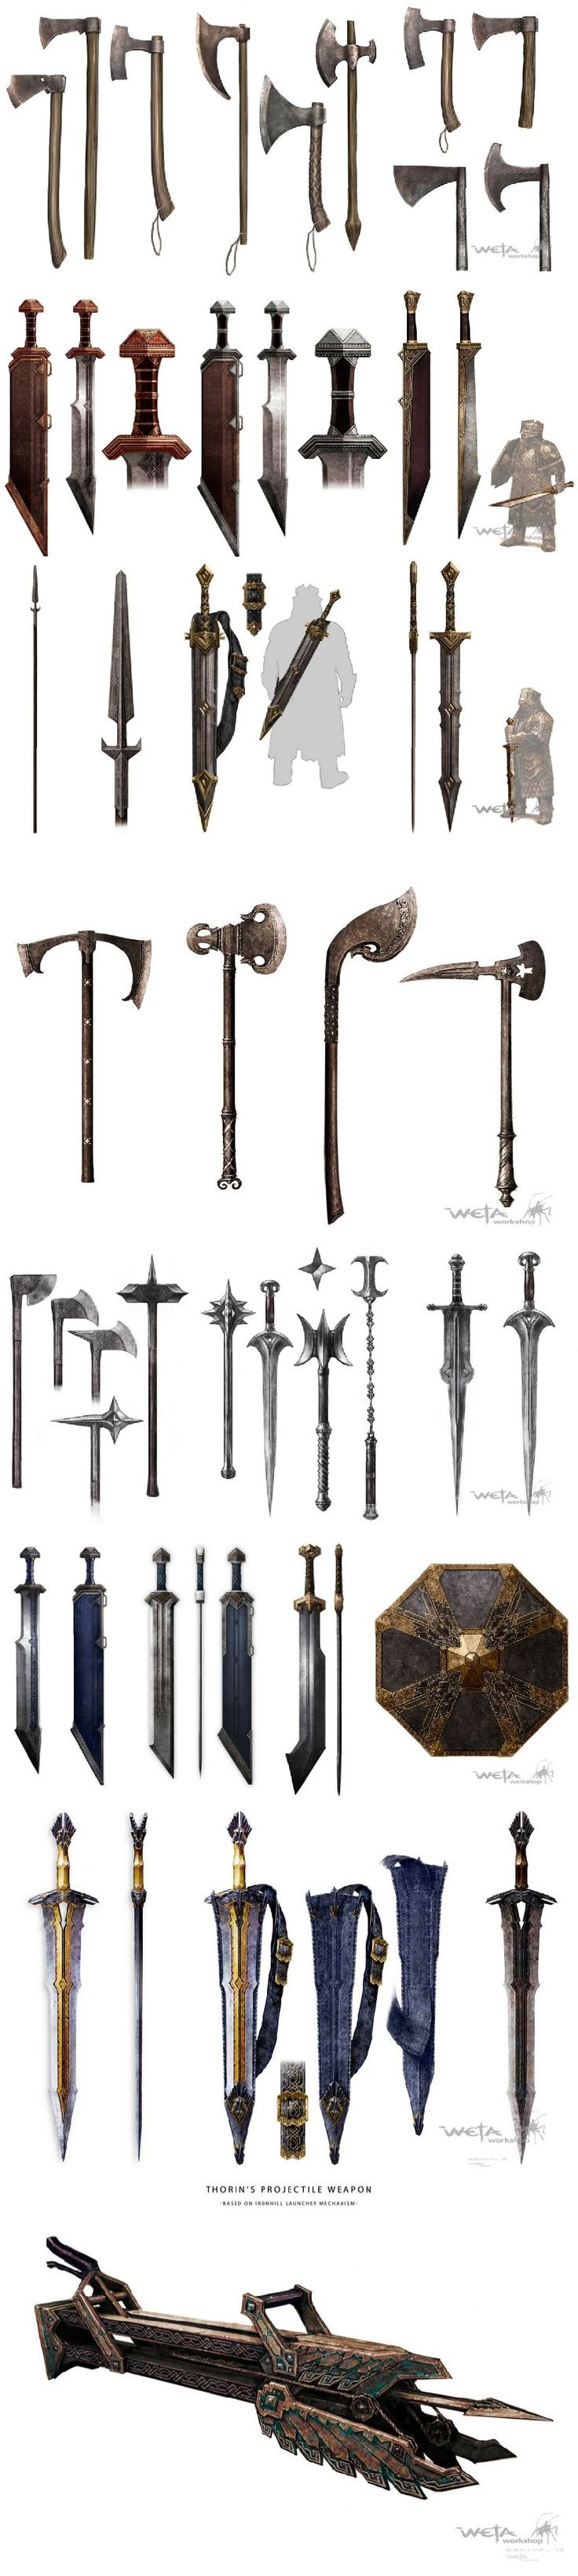 Erebor dwarves weapons concept art_原描述_by Weta Workshop